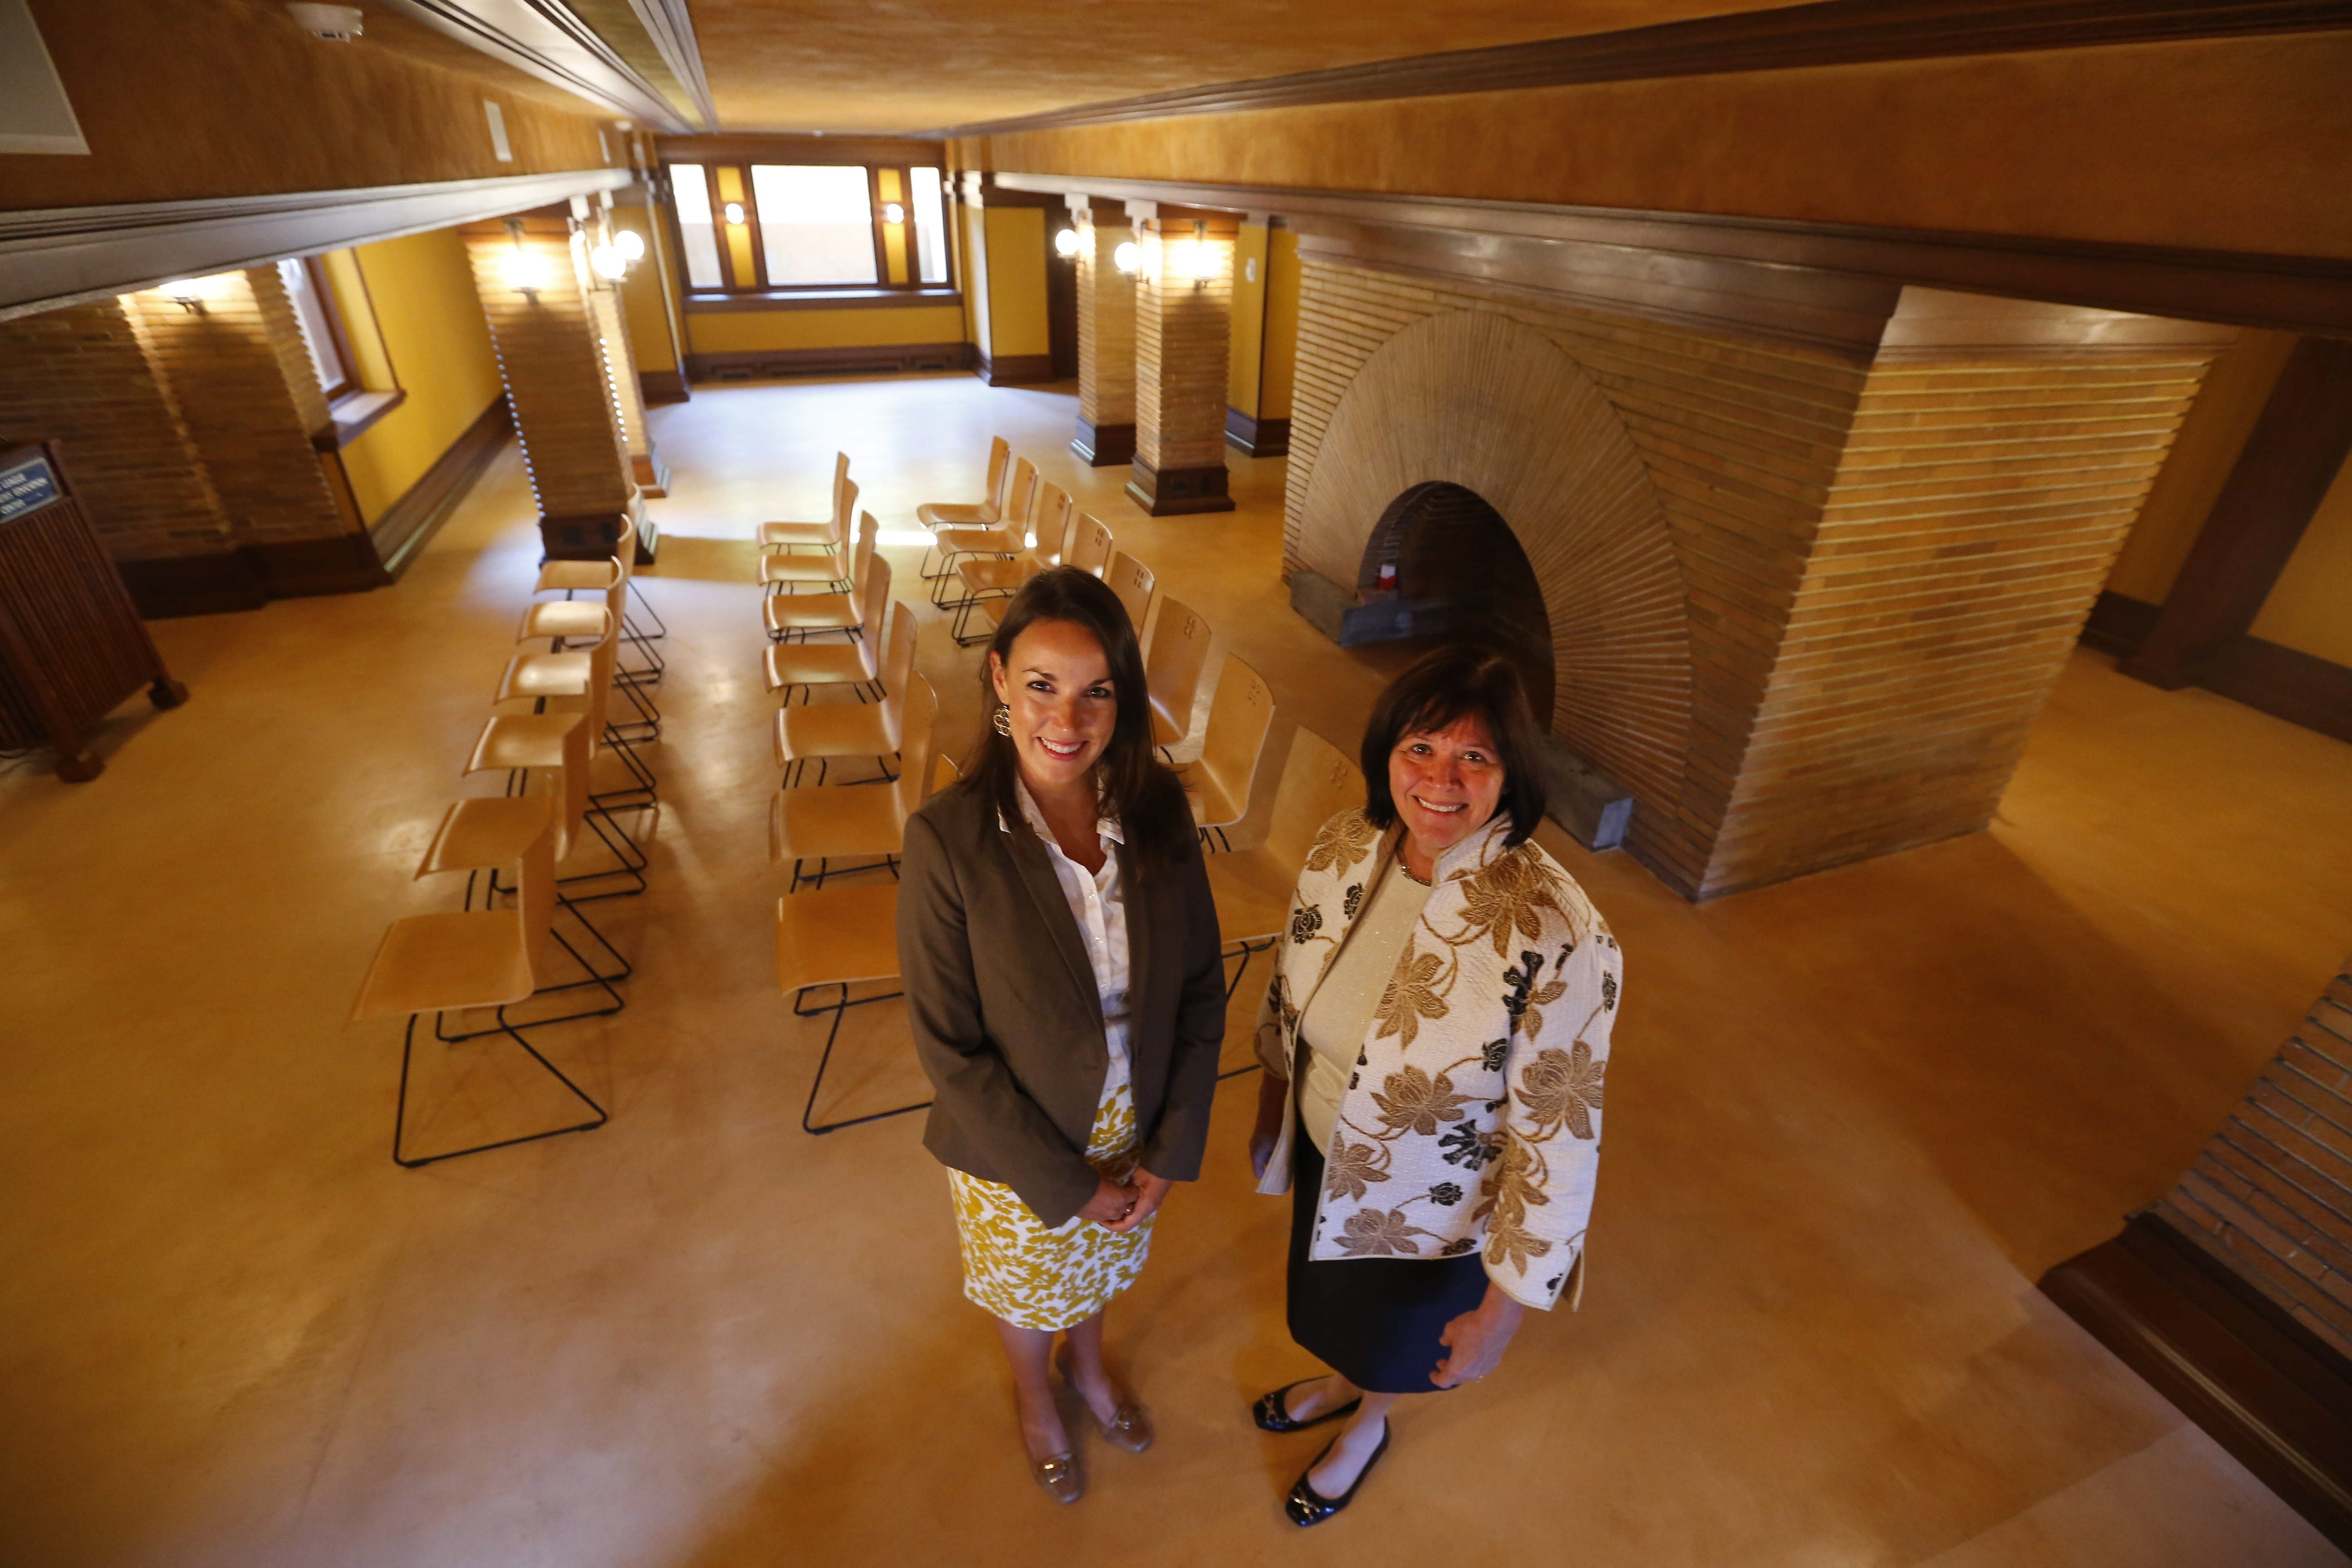 Gina M. Neureuther, director of education and programs at the Darwin D. Martin House, and Mary F. Roberts, executive director of Martin House Restoration Corp., showcase transformed basement now known as Junior League/Buffalo News Education Center.